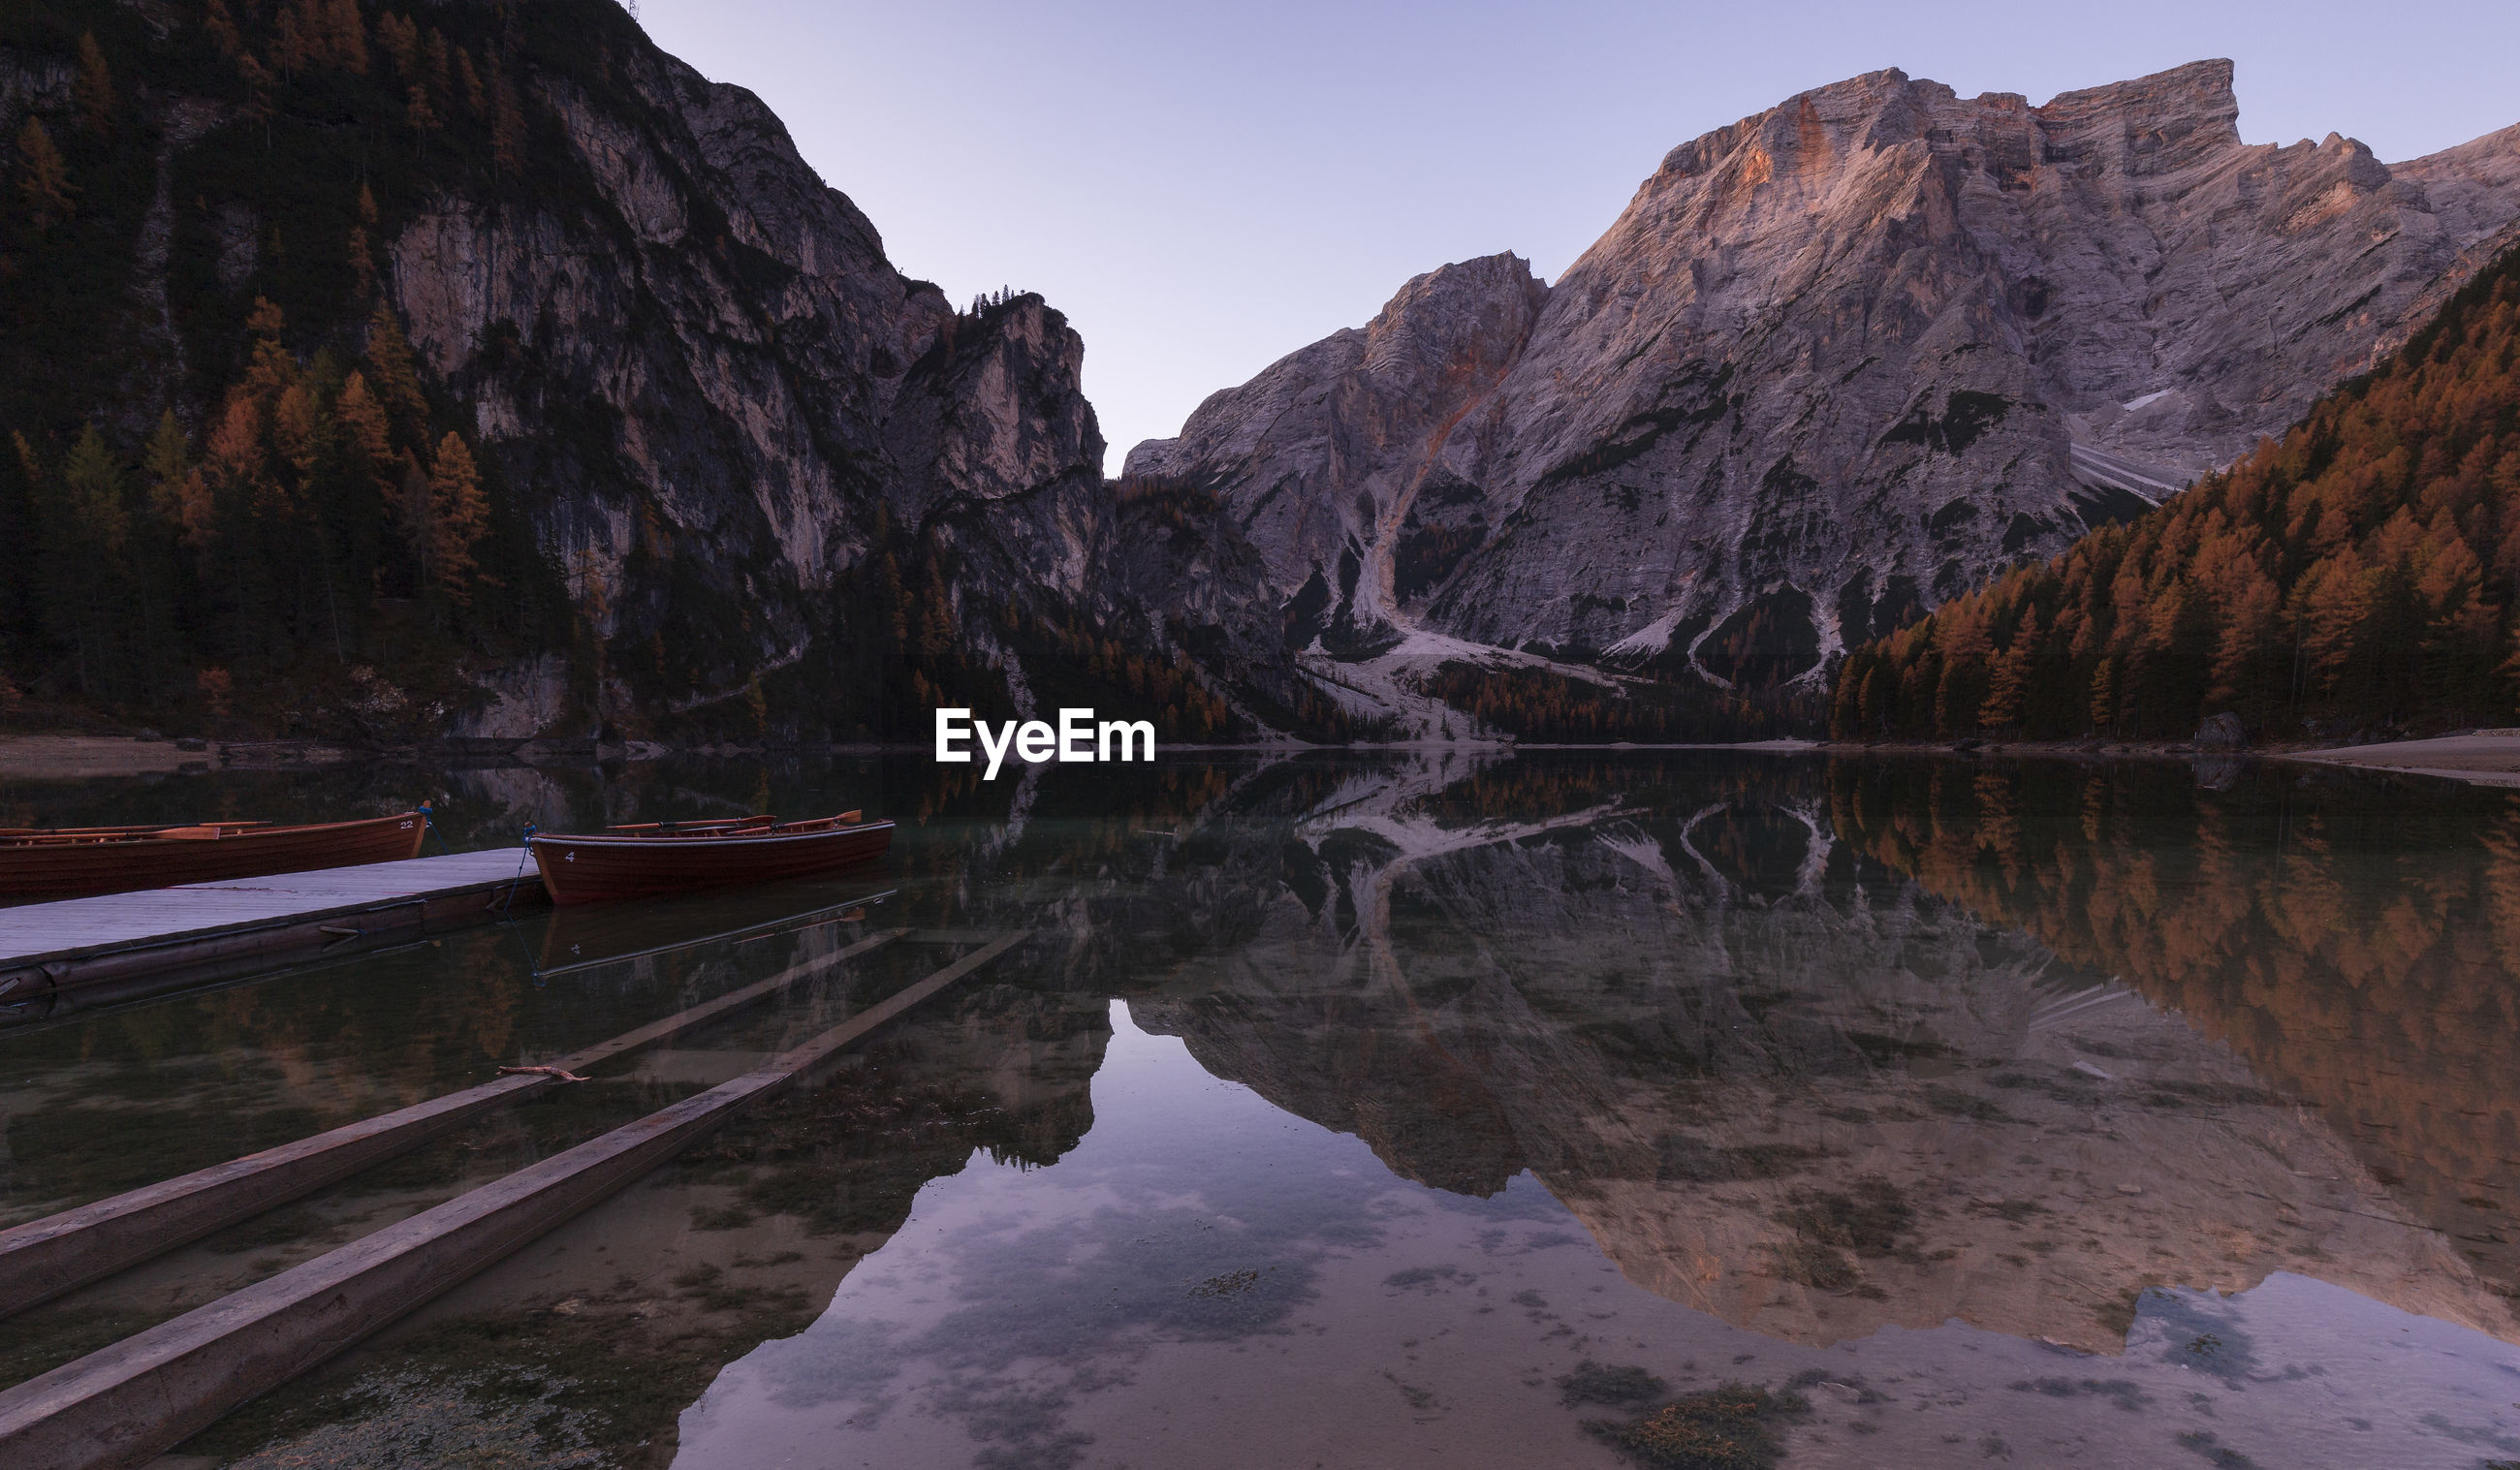 Reflection of mountains in lake against sky at lago di braies in dolomites mountains